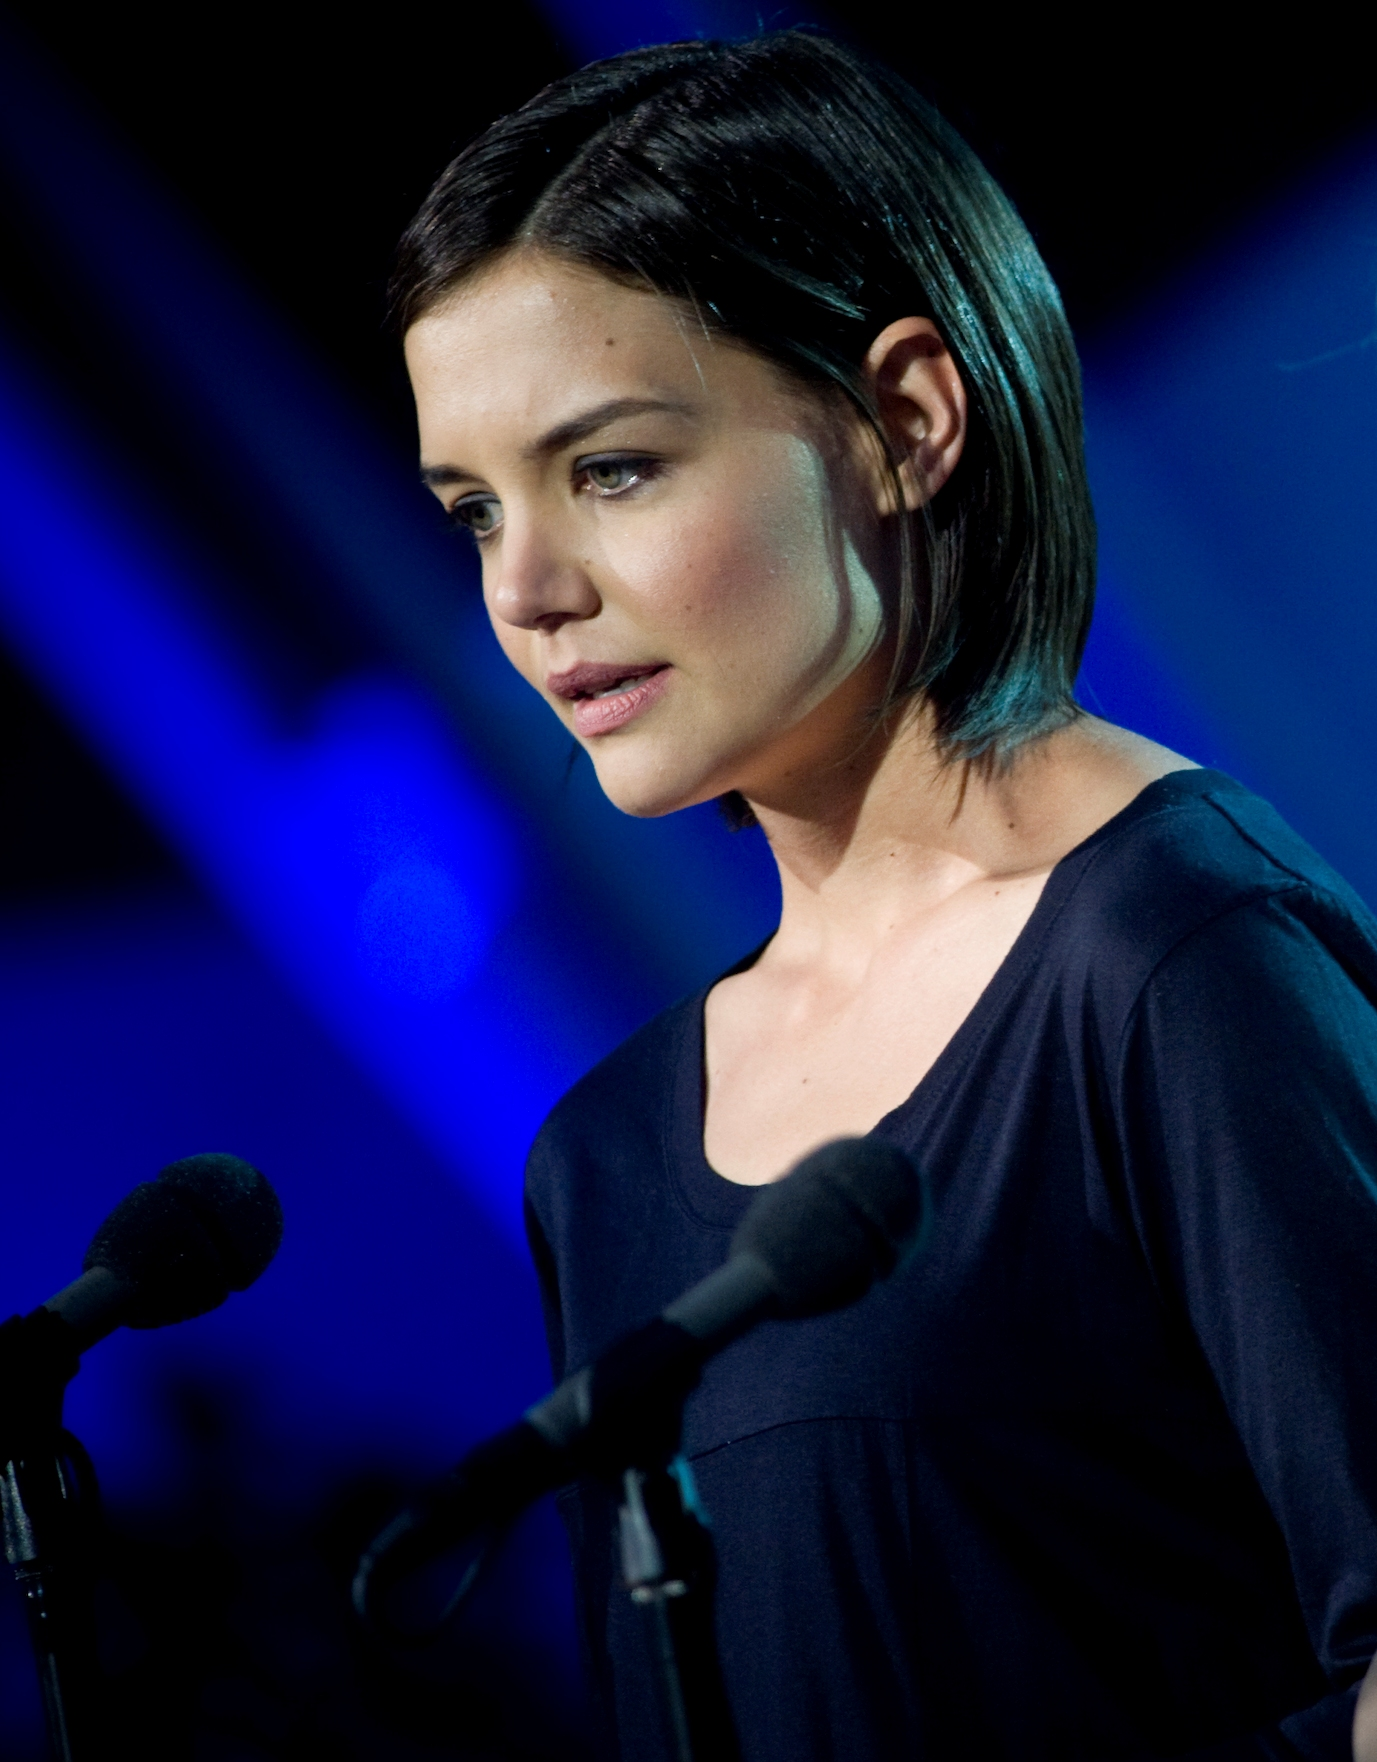 The 39-year old daughter of father Martin Joseph Holmes Sr. and mother Kathleen Stothers Katie Holmes in 2018 photo. Katie Holmes earned a  million dollar salary - leaving the net worth at 25 million in 2018